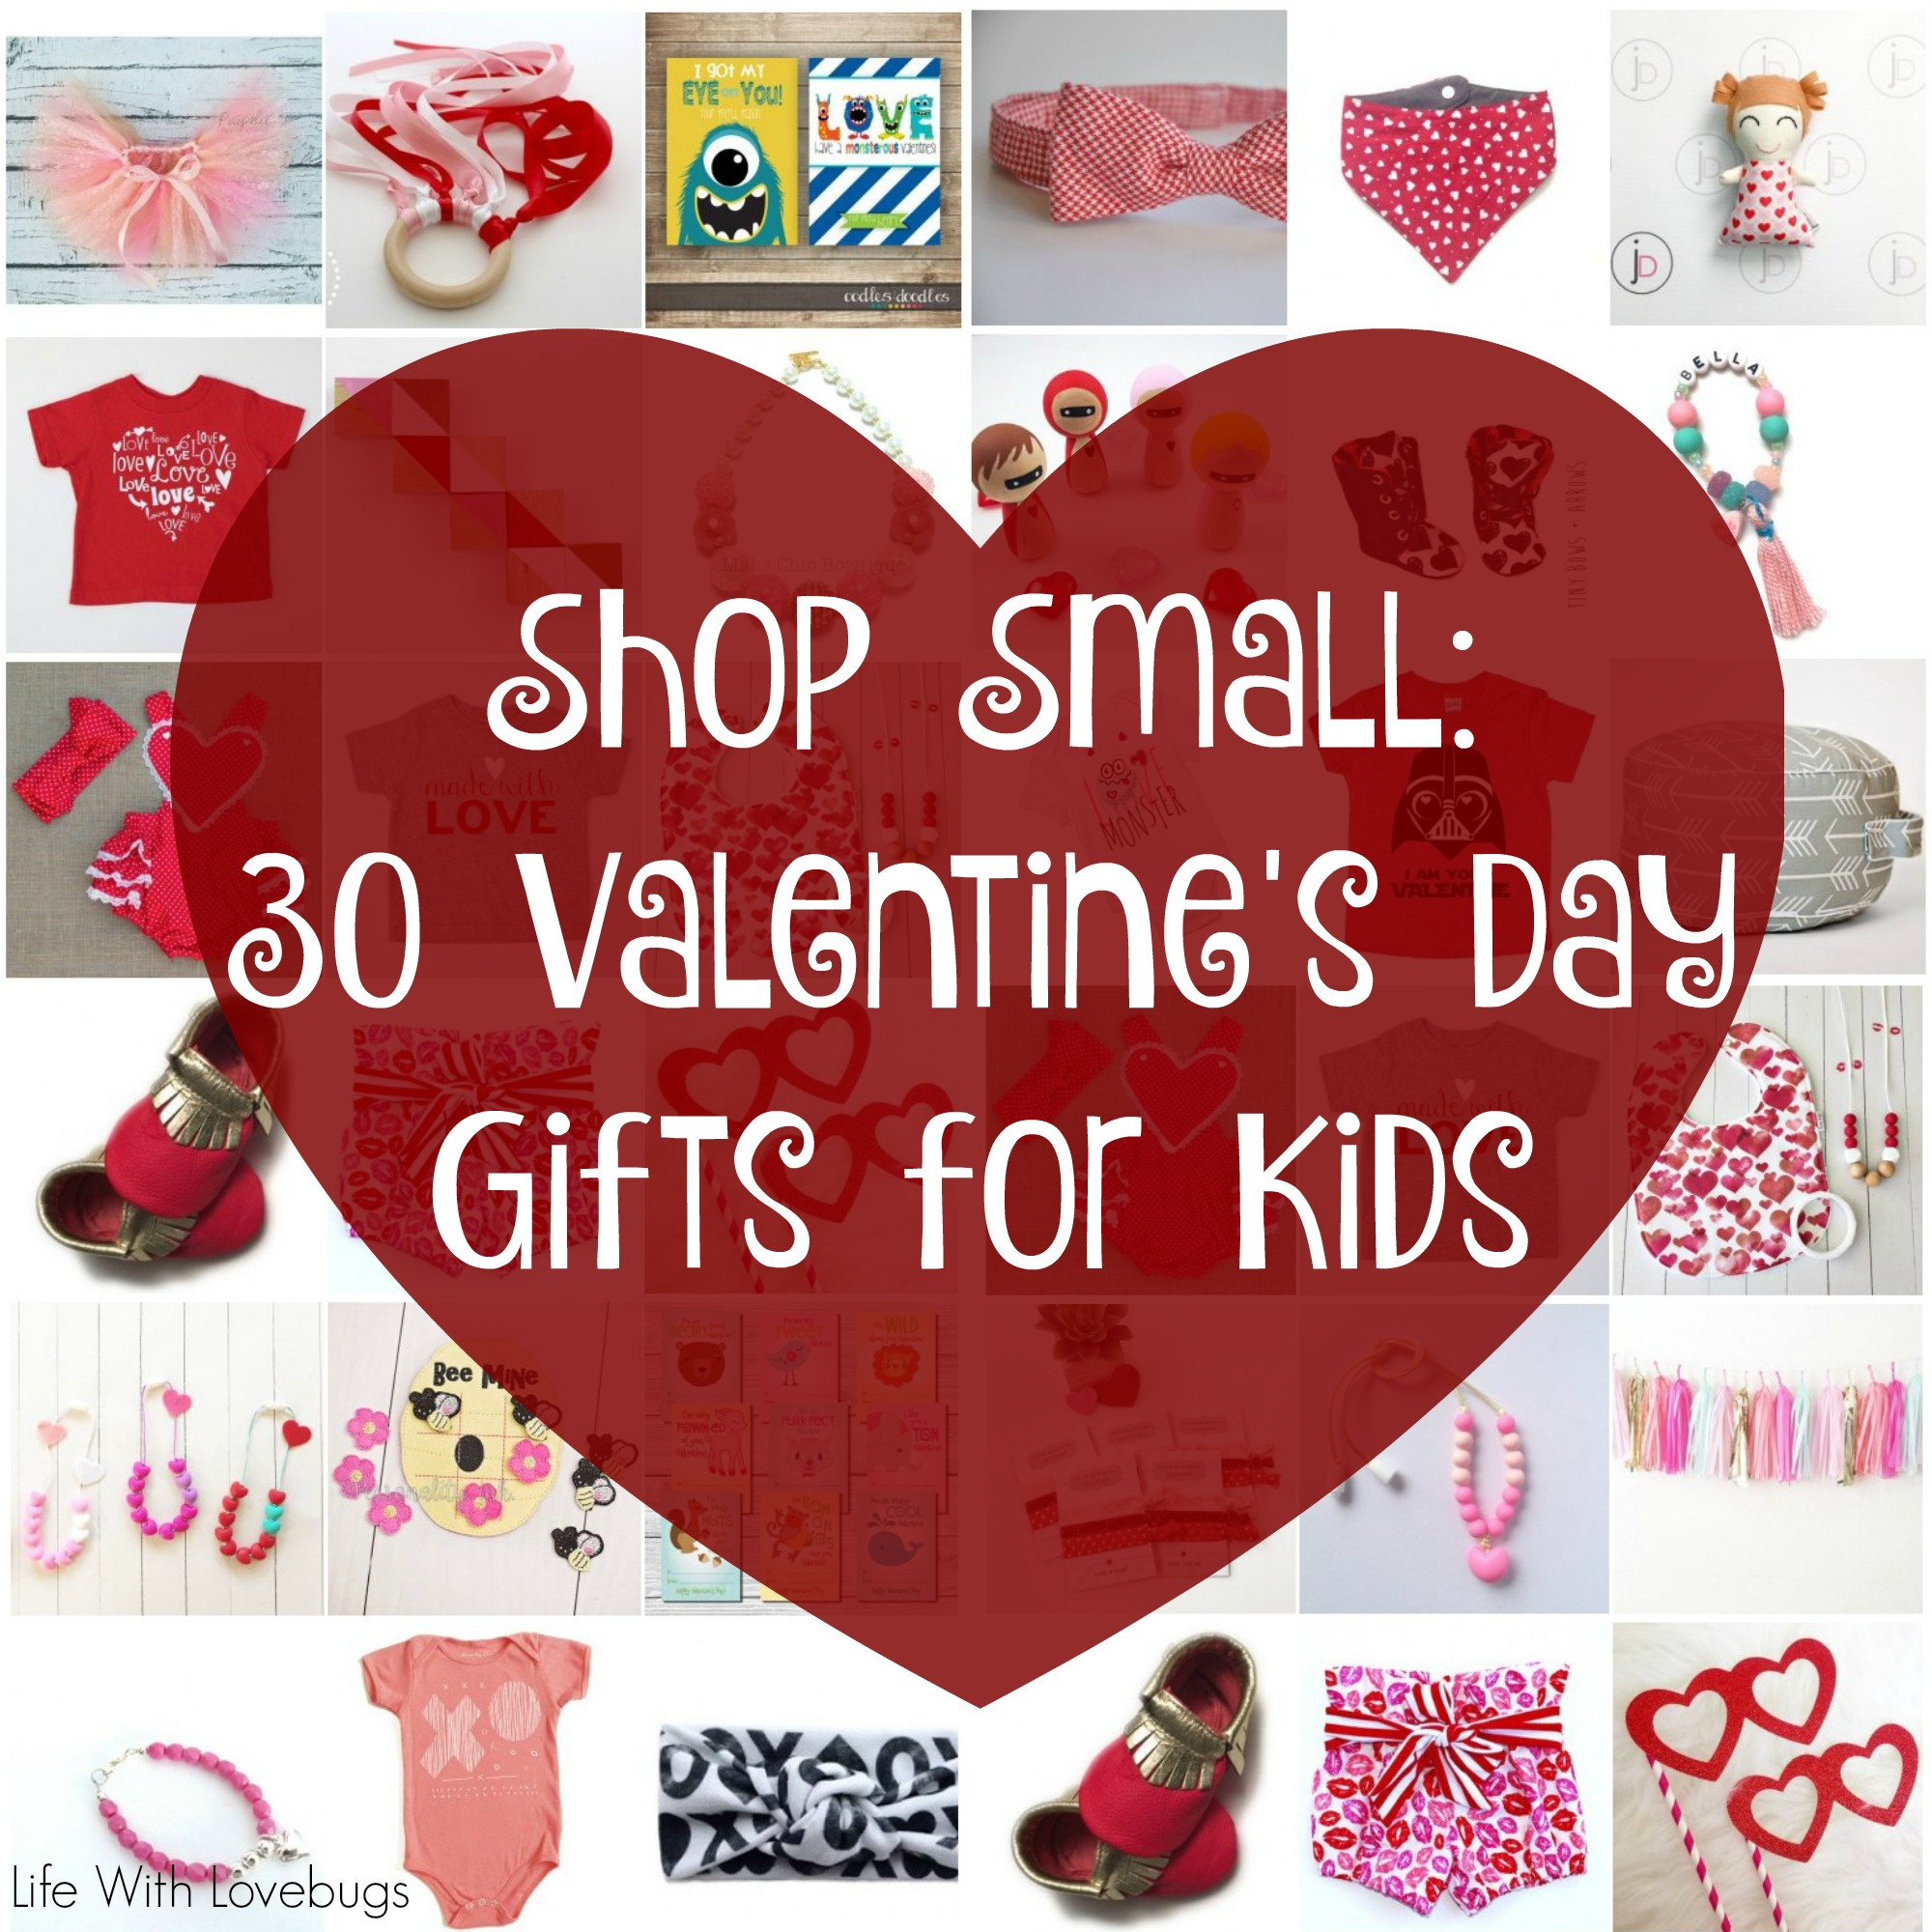 Small Valentines Gift Ideas  Shop Small 30 Valentines Day Gifts for Kids Life With